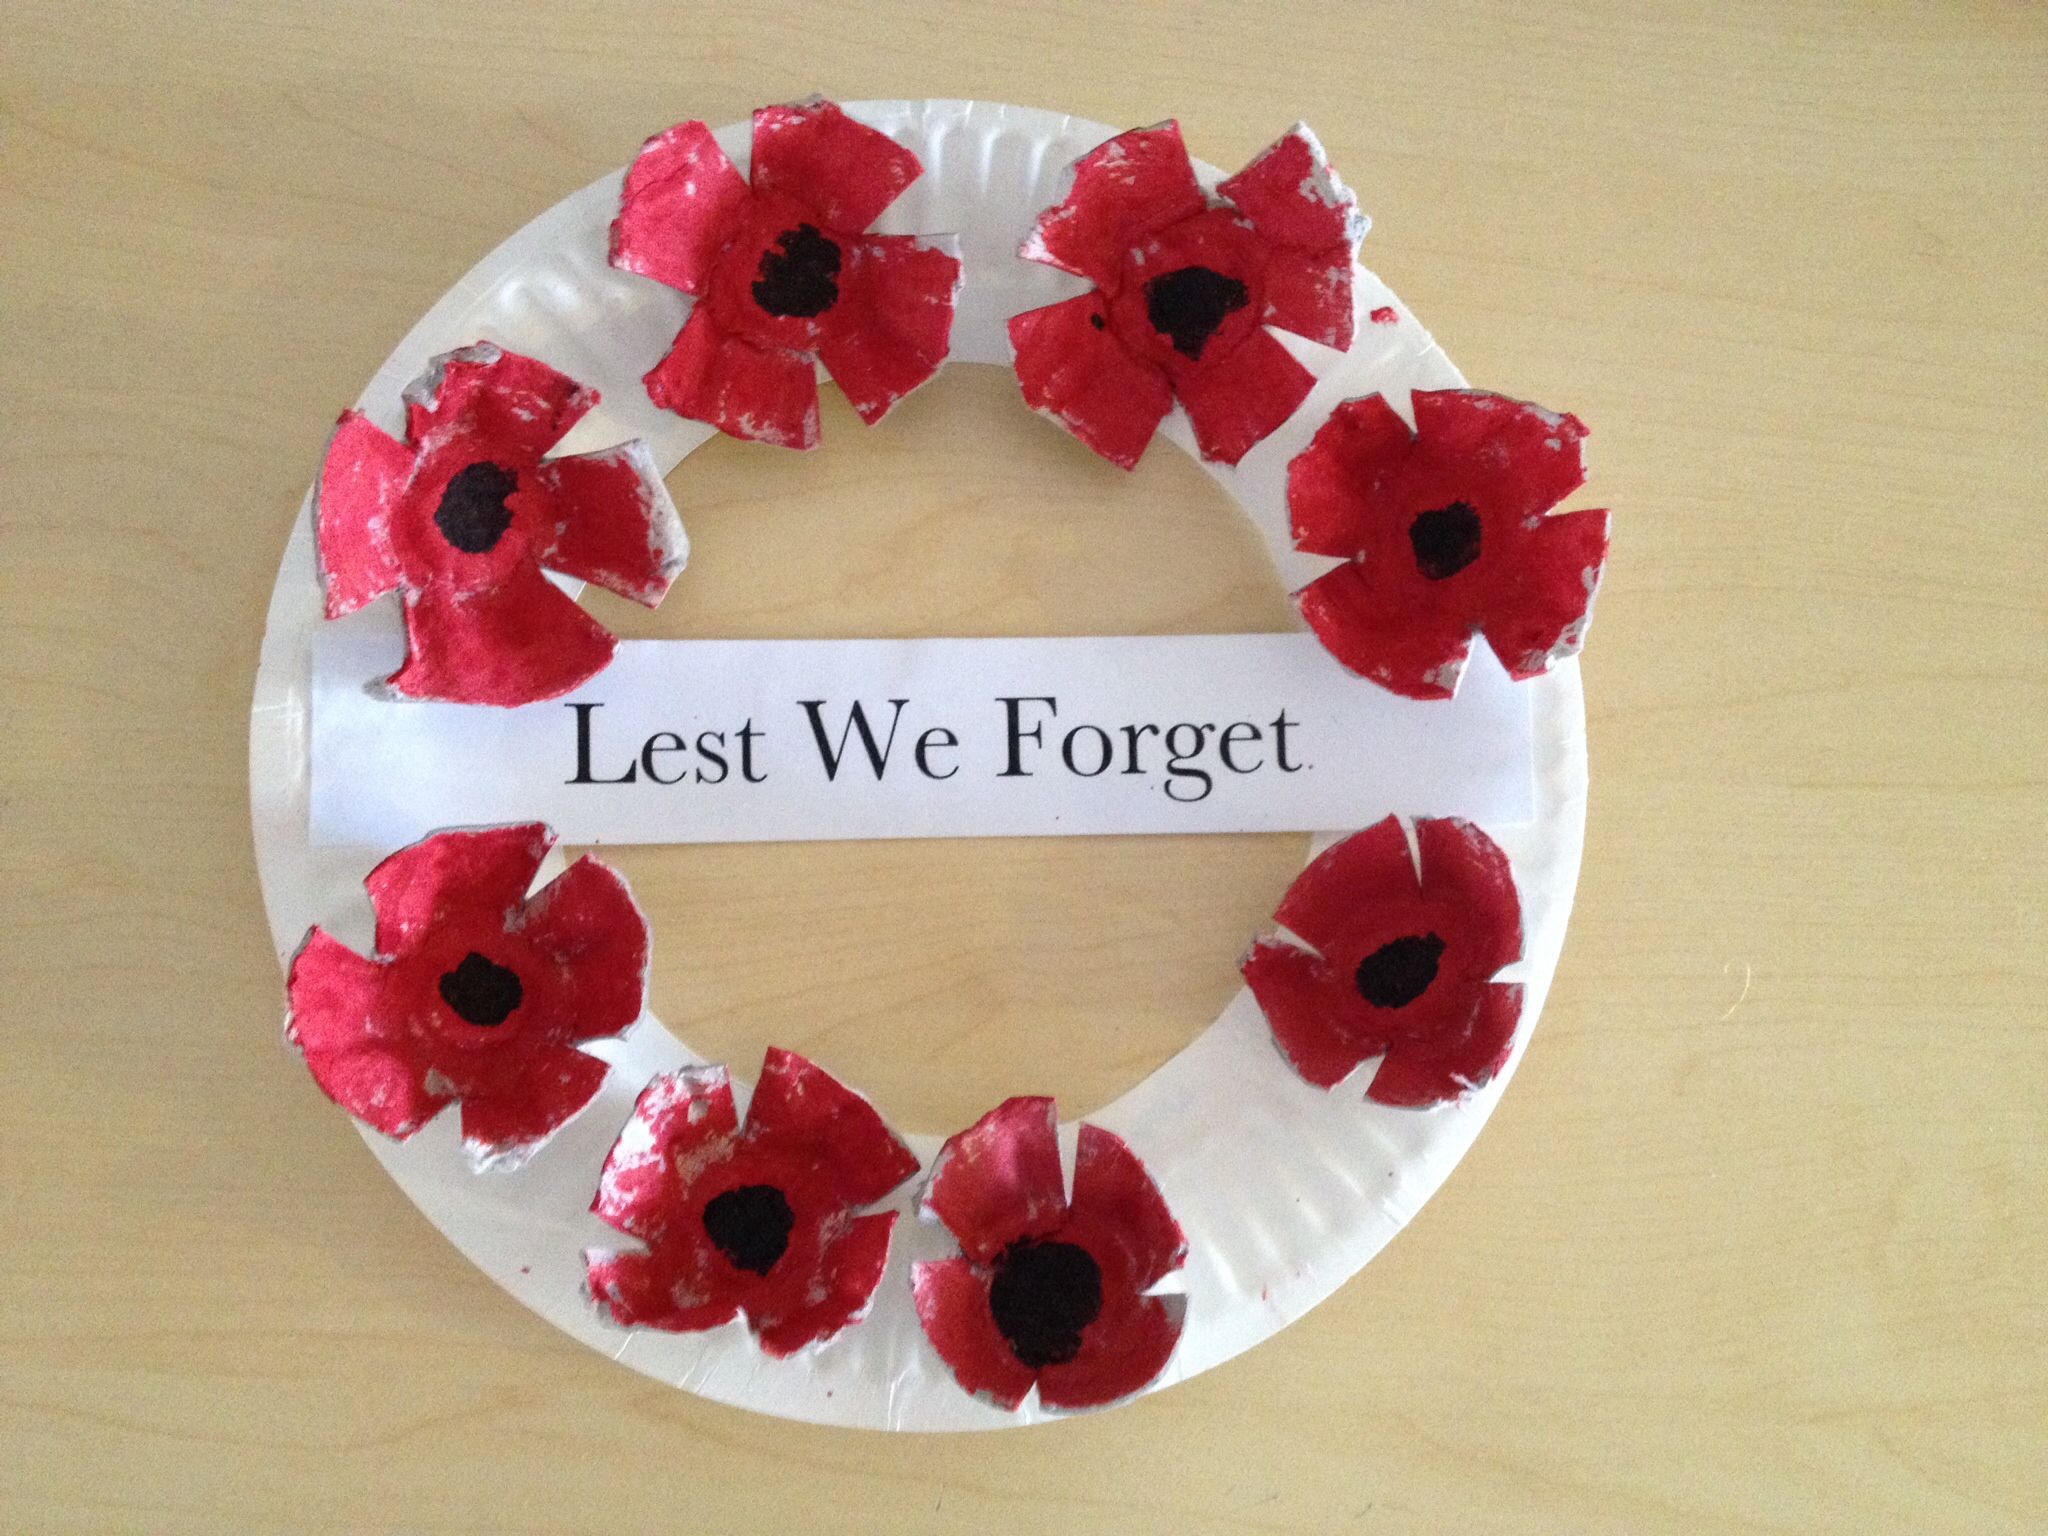 get 20 anzac day 2015 ideas on pinterest without signing up